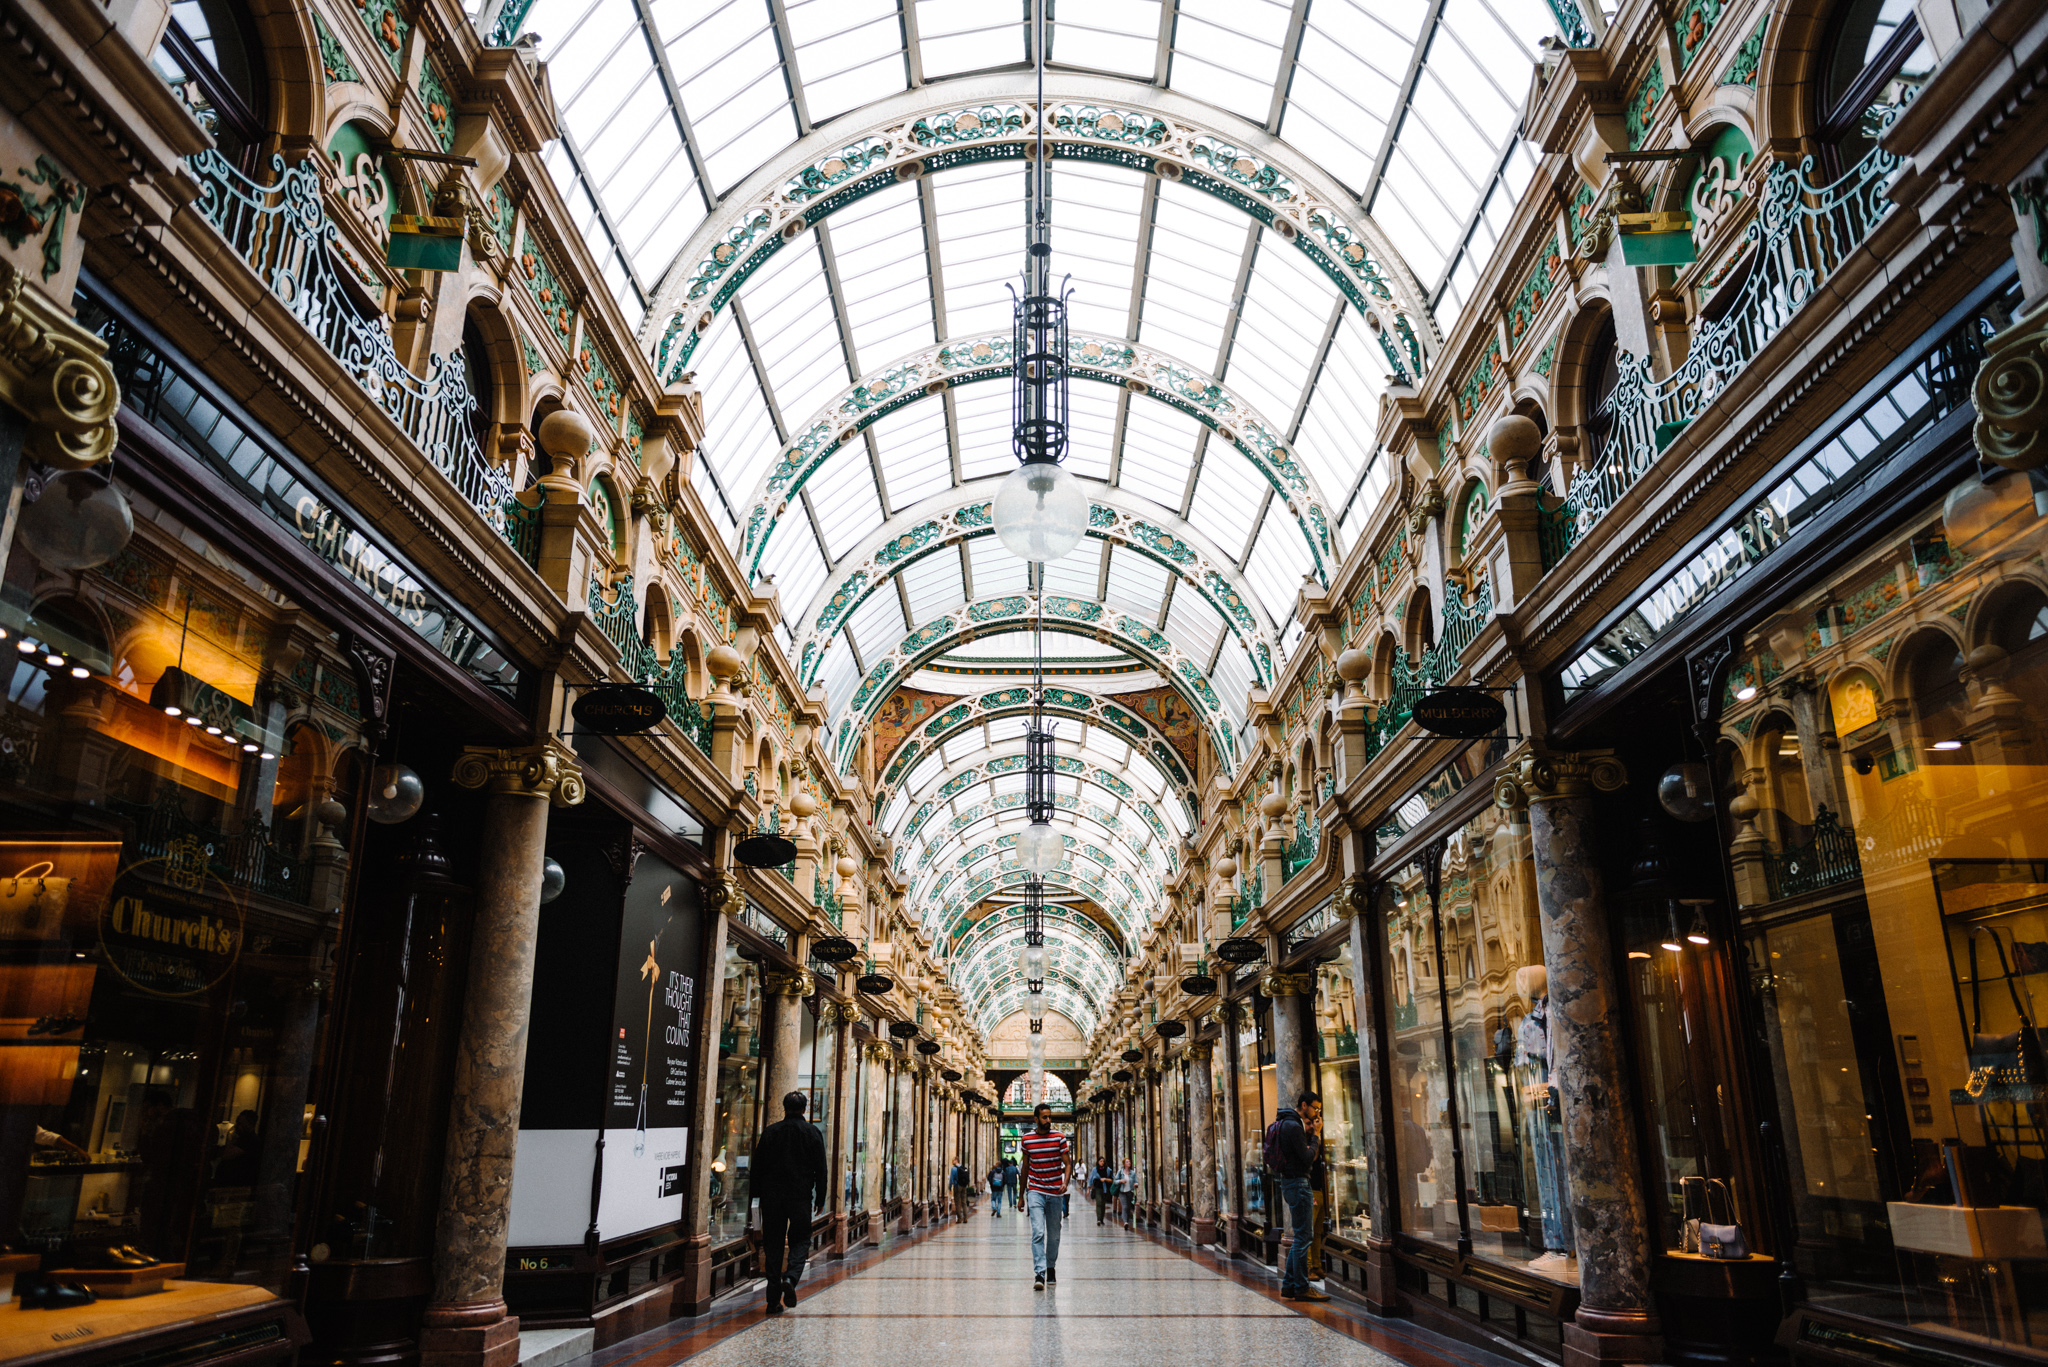 Have our high streets capitalised on the 2021 'Staycation'?